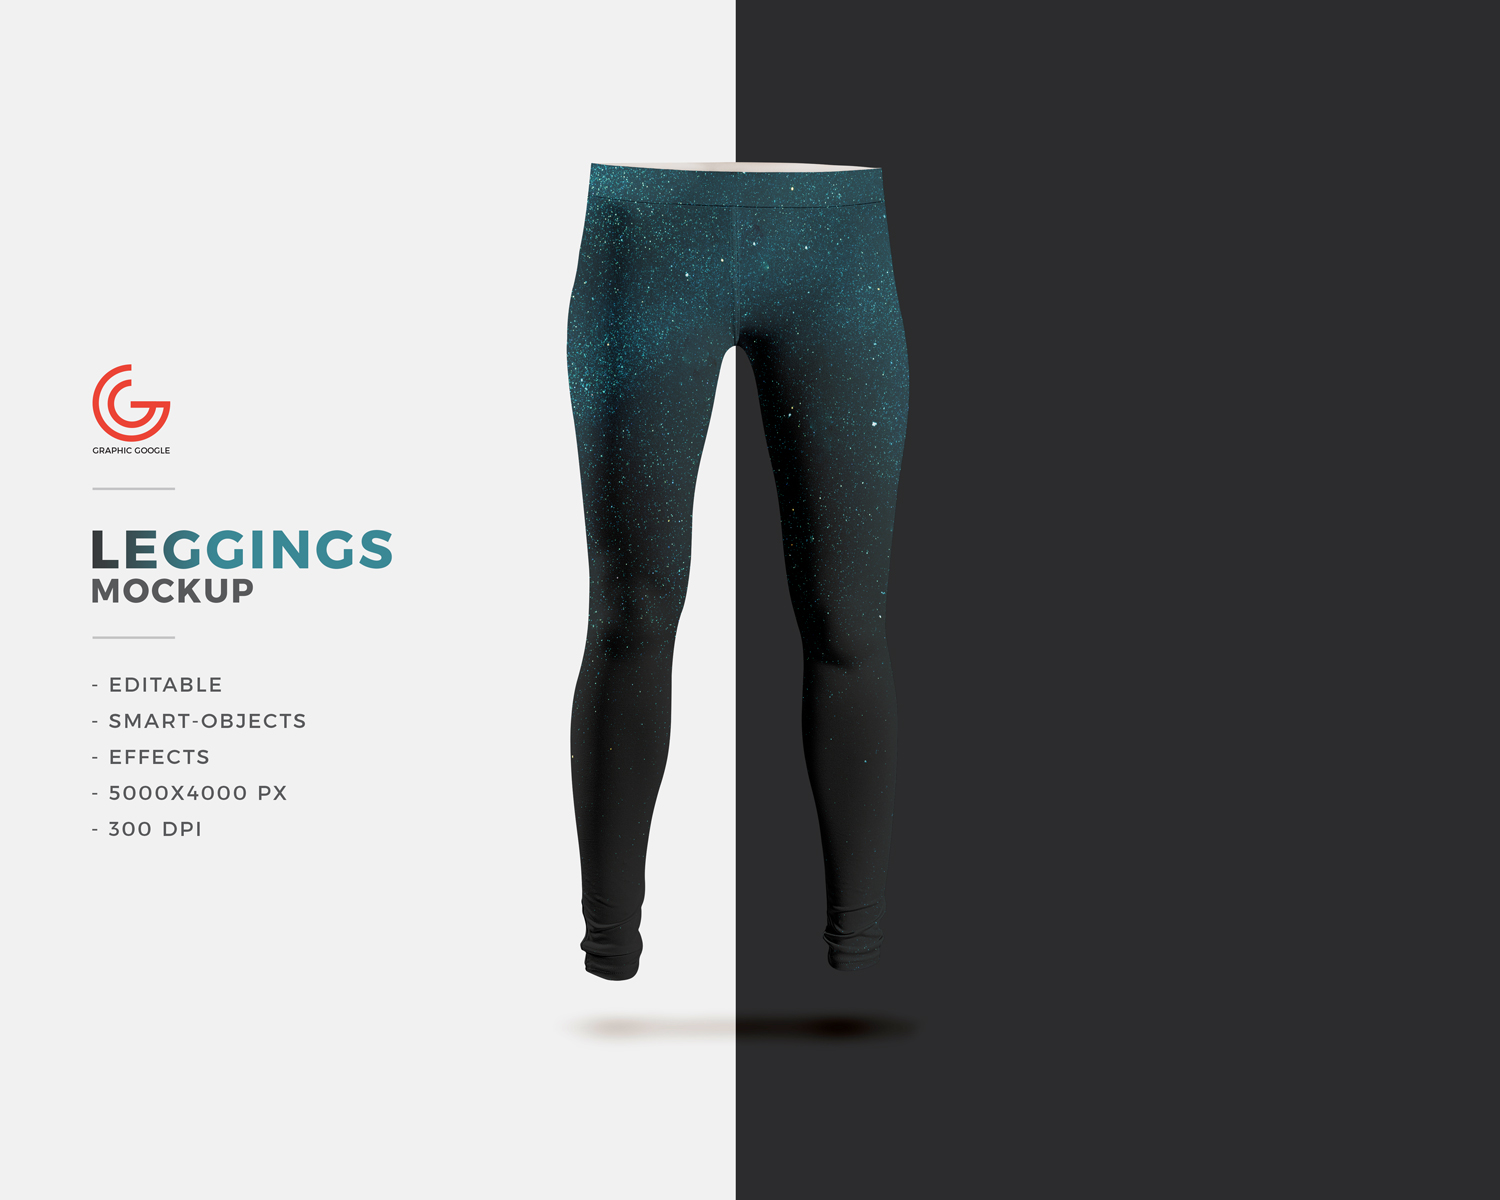 Free-Leggings-Mockup-PSD-2018-3